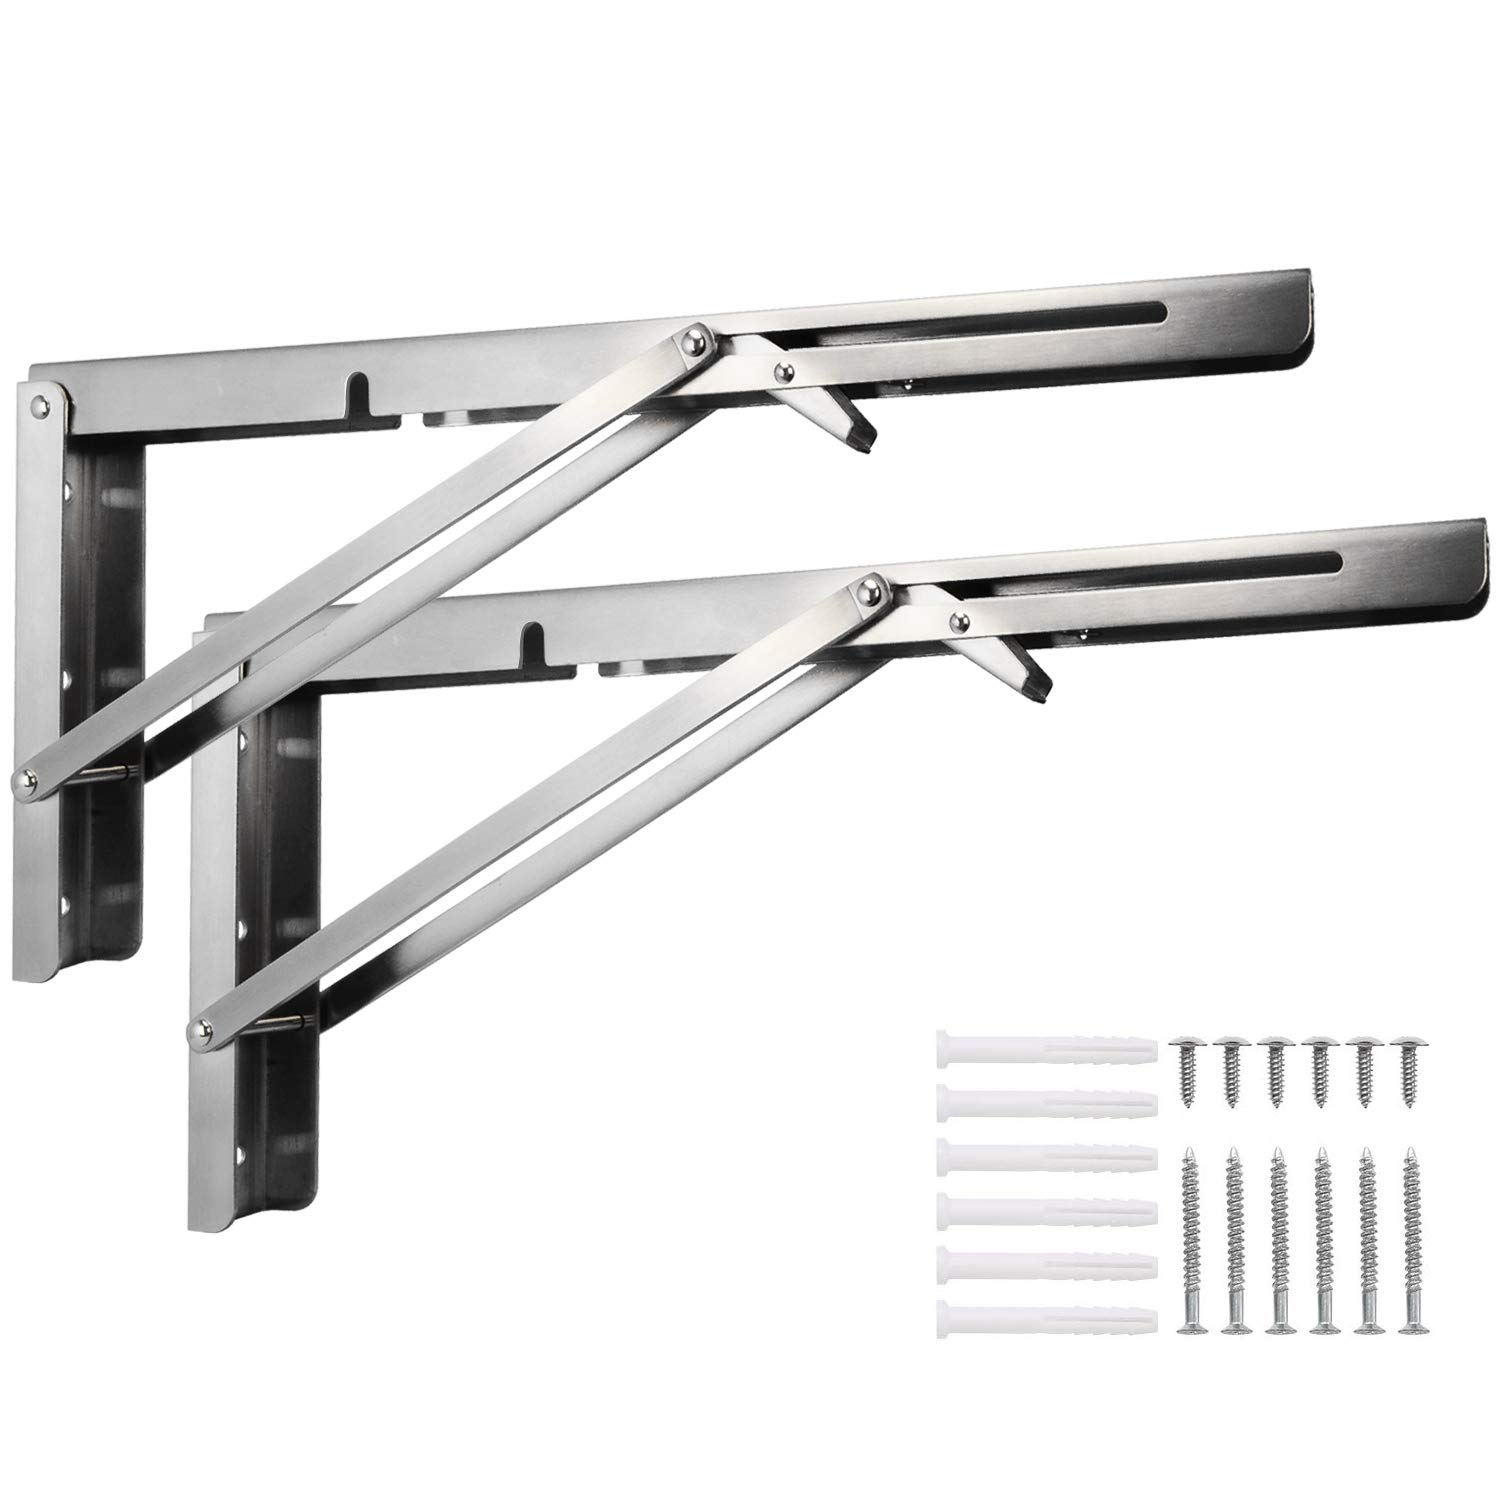 Douper Collapsible Shelf Brackets Folding Supports 16inch Long Arm Heavy Duty Stainless Steel Construction in Brush Finish Max Load 400lbs Sold in Pairs